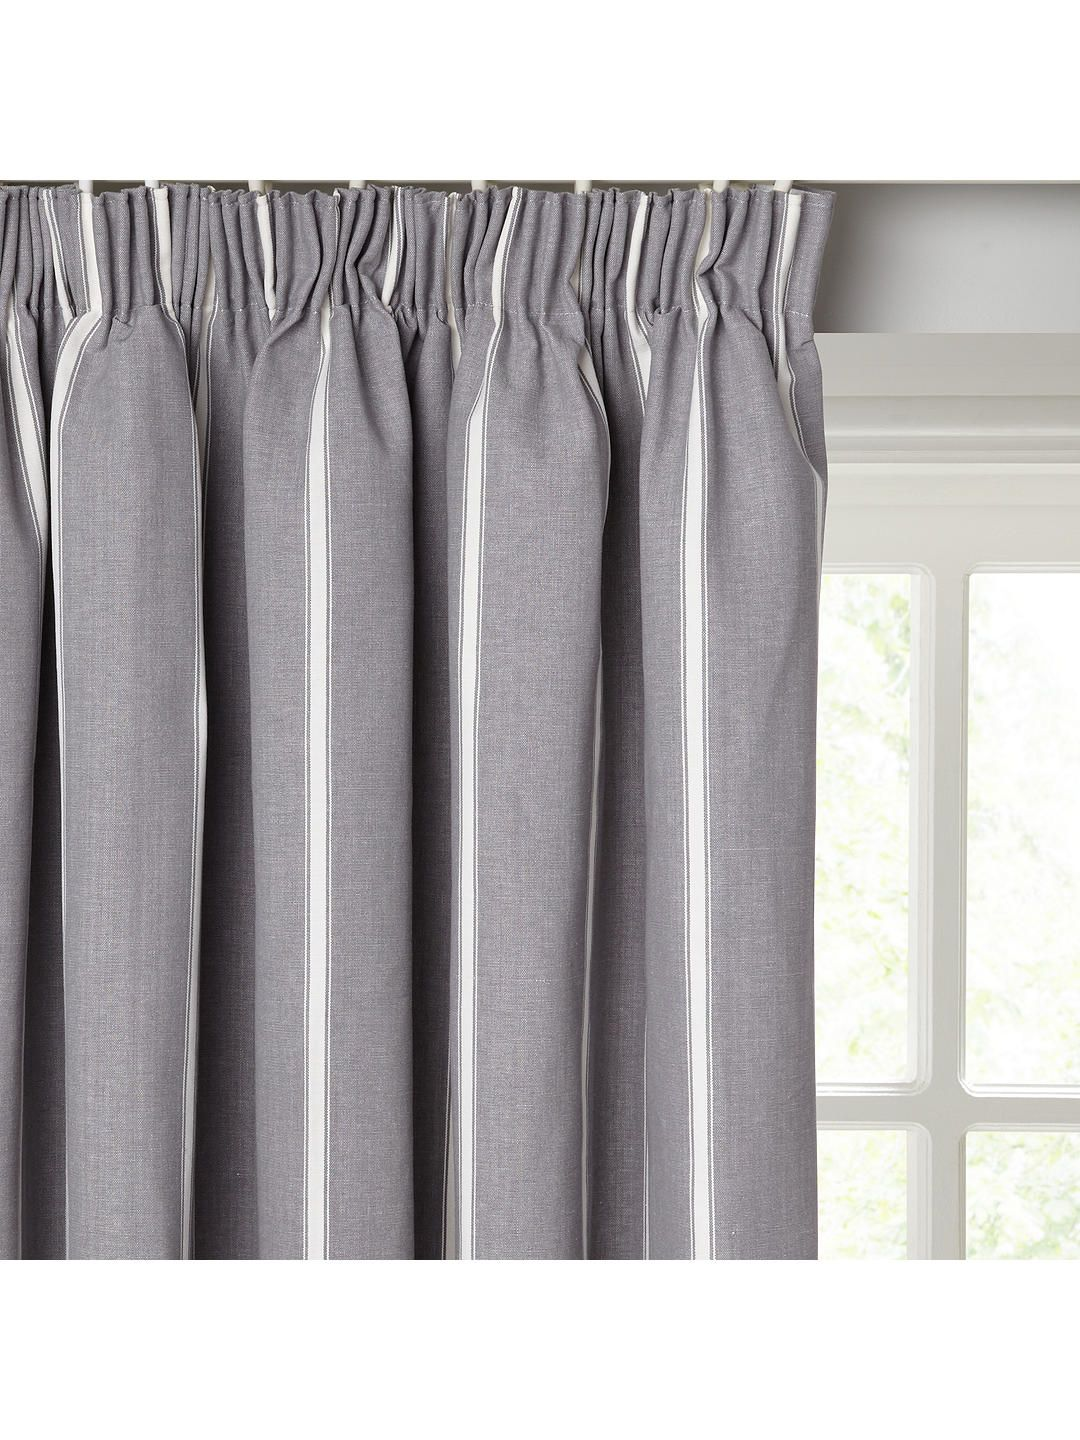 John Lewis Partners Padstow Stripe Pair Lined Pencil Pleat Curtains Pleated Curtains Custom Drapes Pencil Pleat